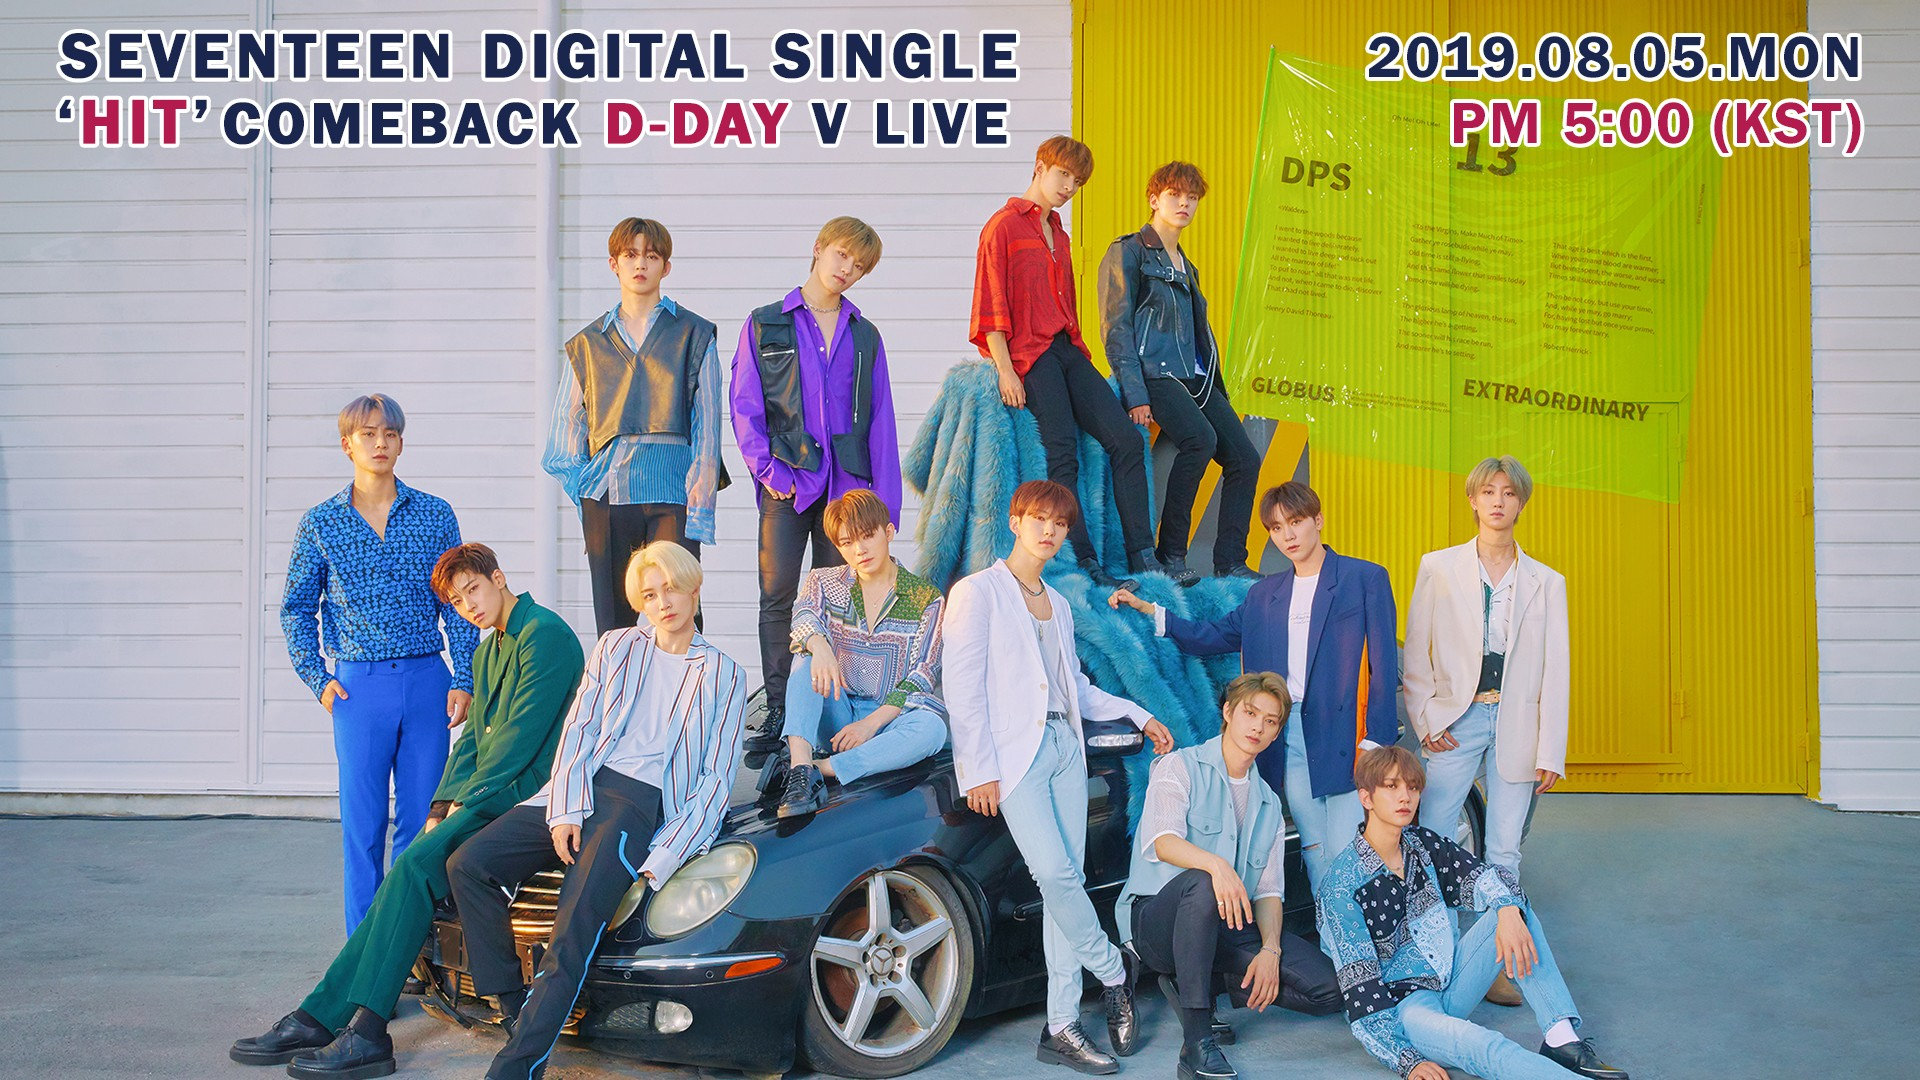 SEVENTEEN DIGITAL SINGLE 'HIT' COMEBACK D-DAY V LIVE